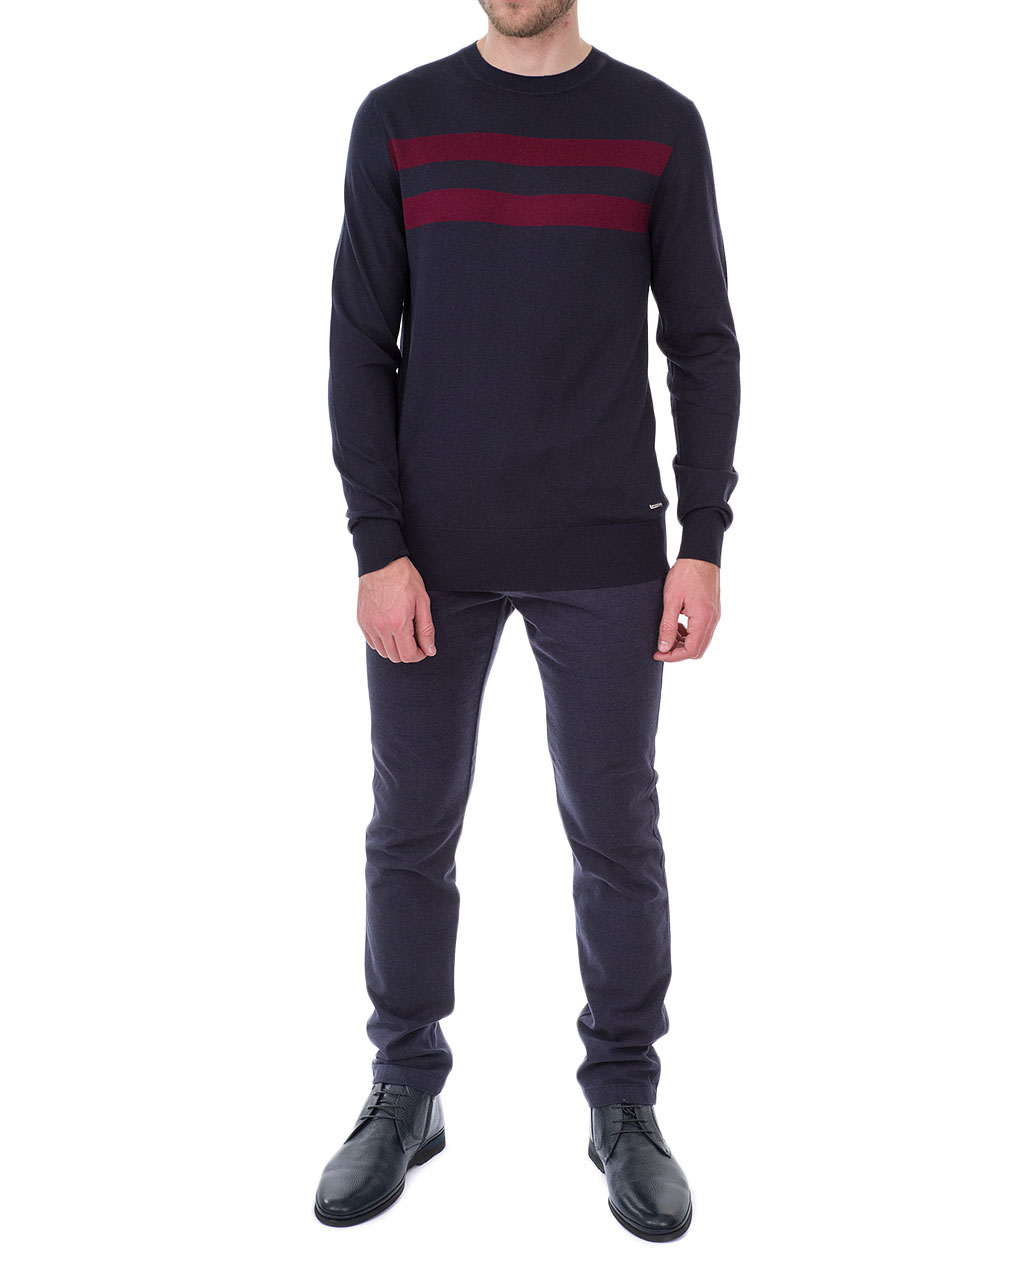 Men's jumper 1860-319/19-20 (2)